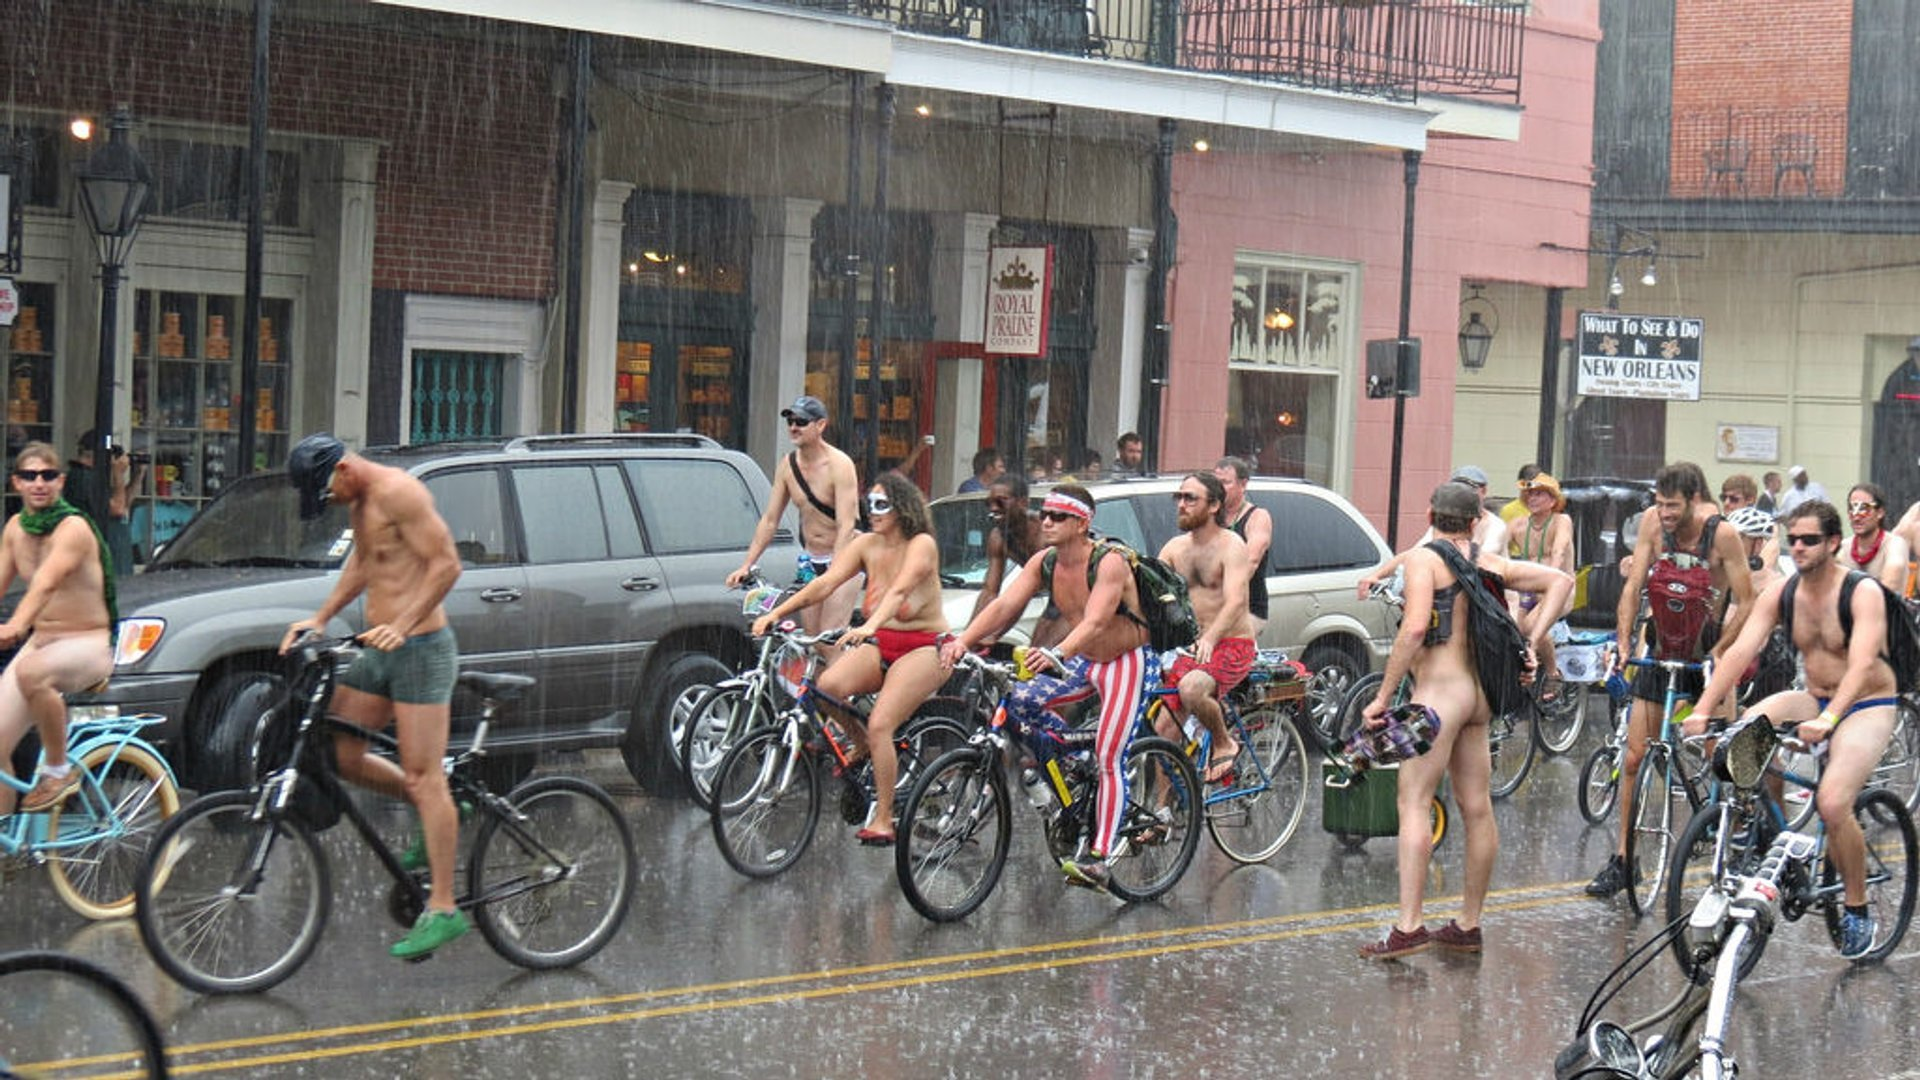 World Naked Bike Ride in New Orleans - Best Season 2019